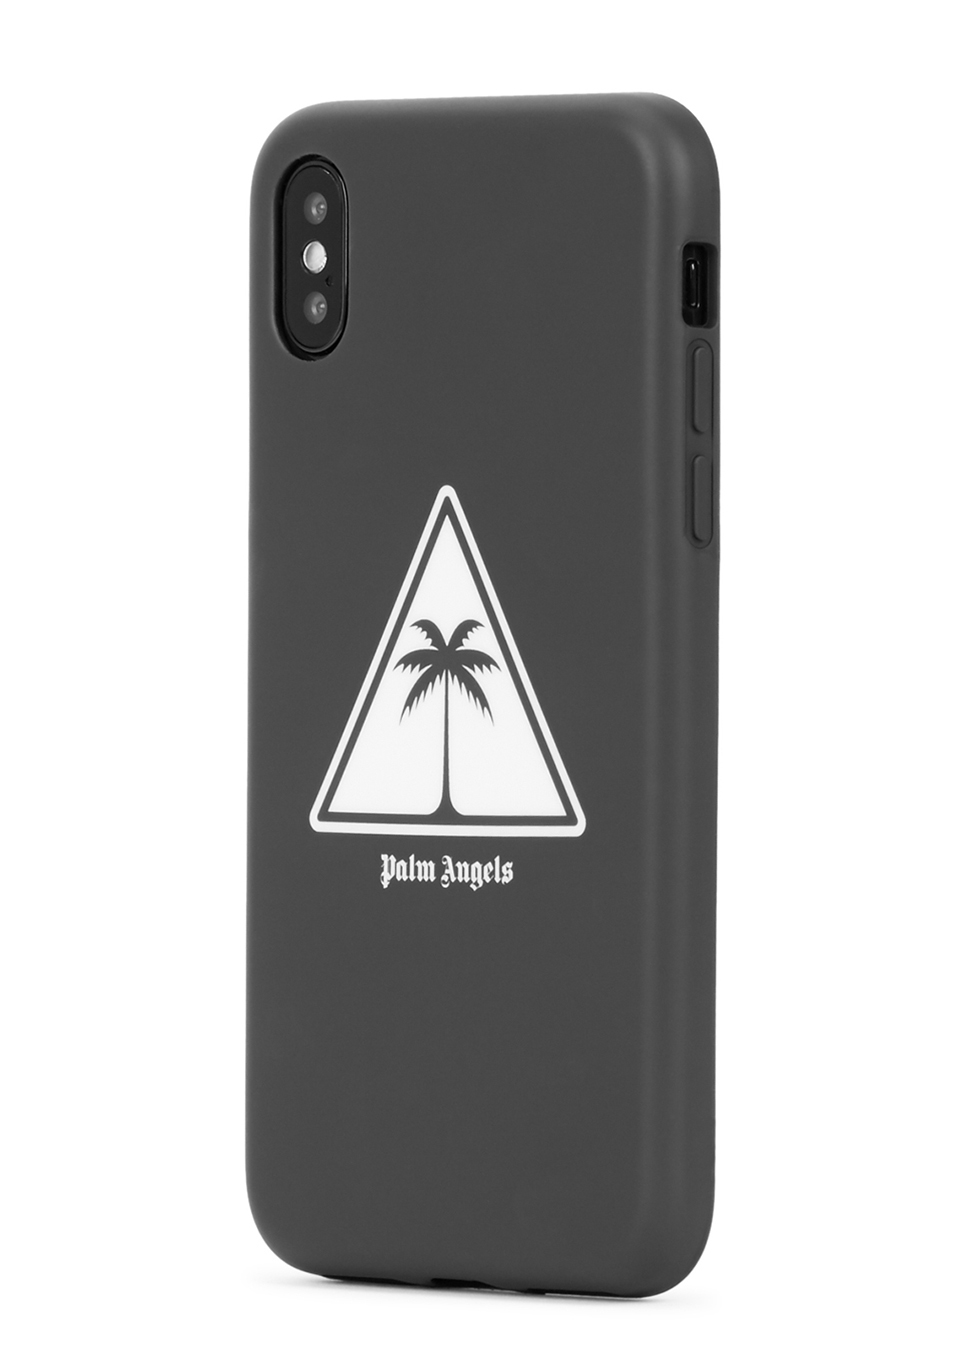 cases and covers home harvey nicholsblack iphone x cover